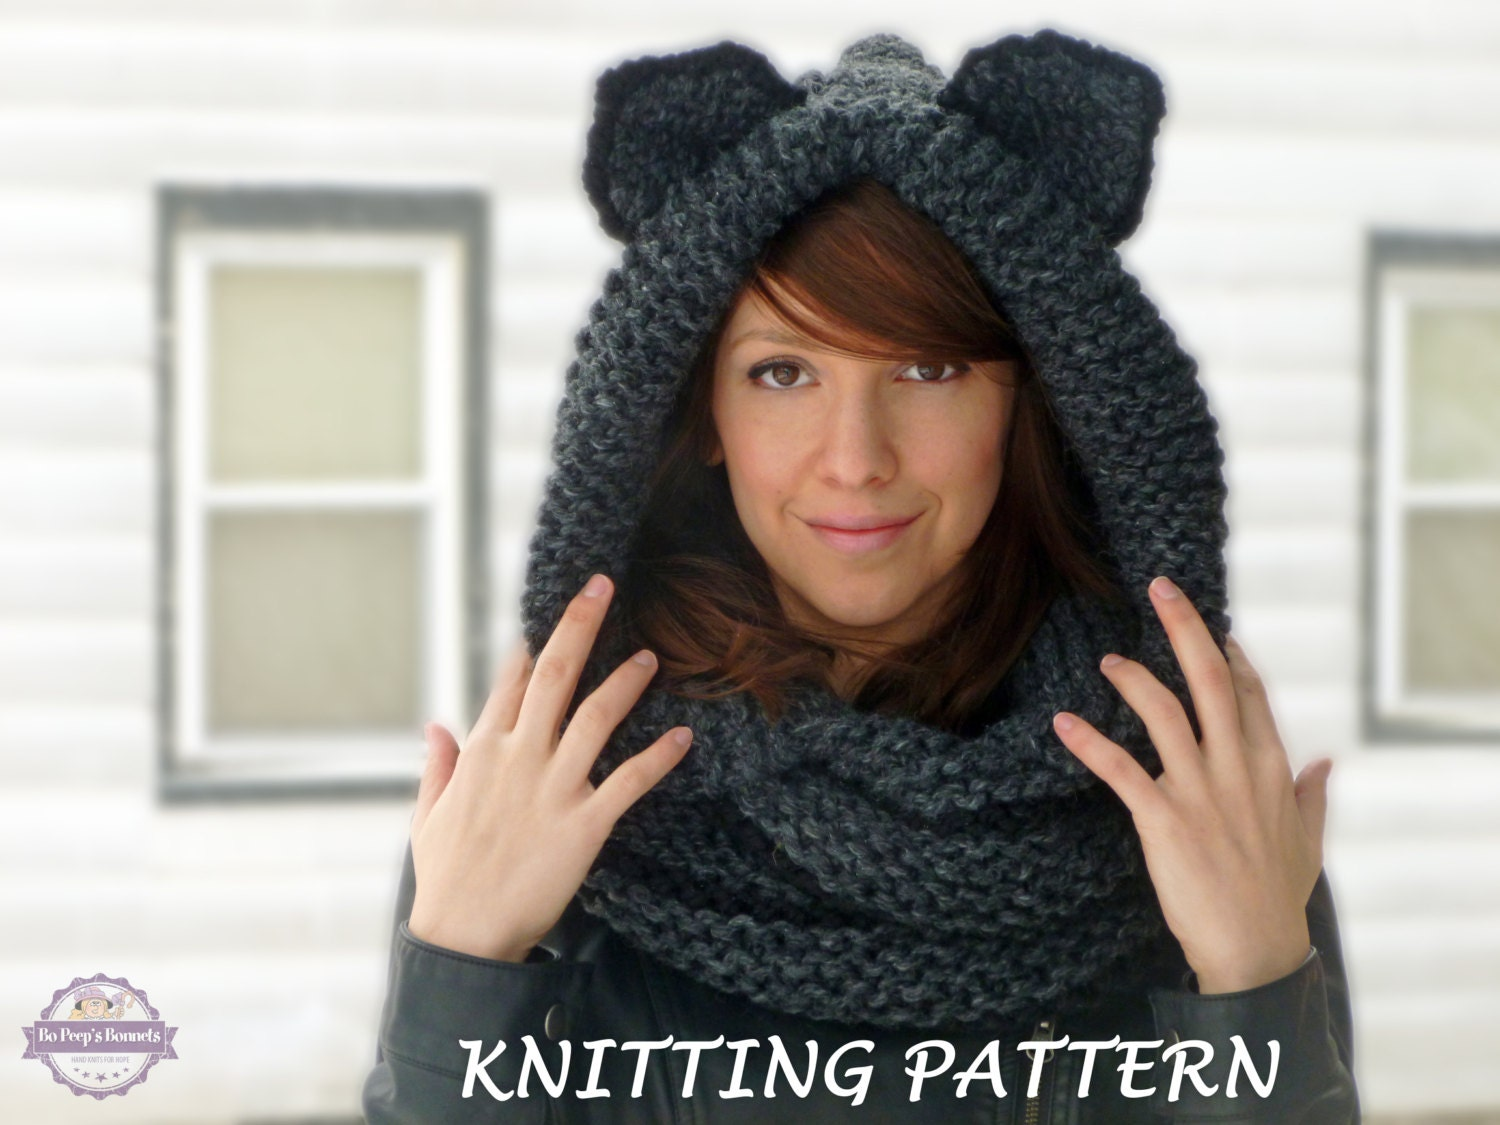 KNITTING PATTERN Hooded Cat Cowl, Cat Ears Hooded Infinity Scarf ...